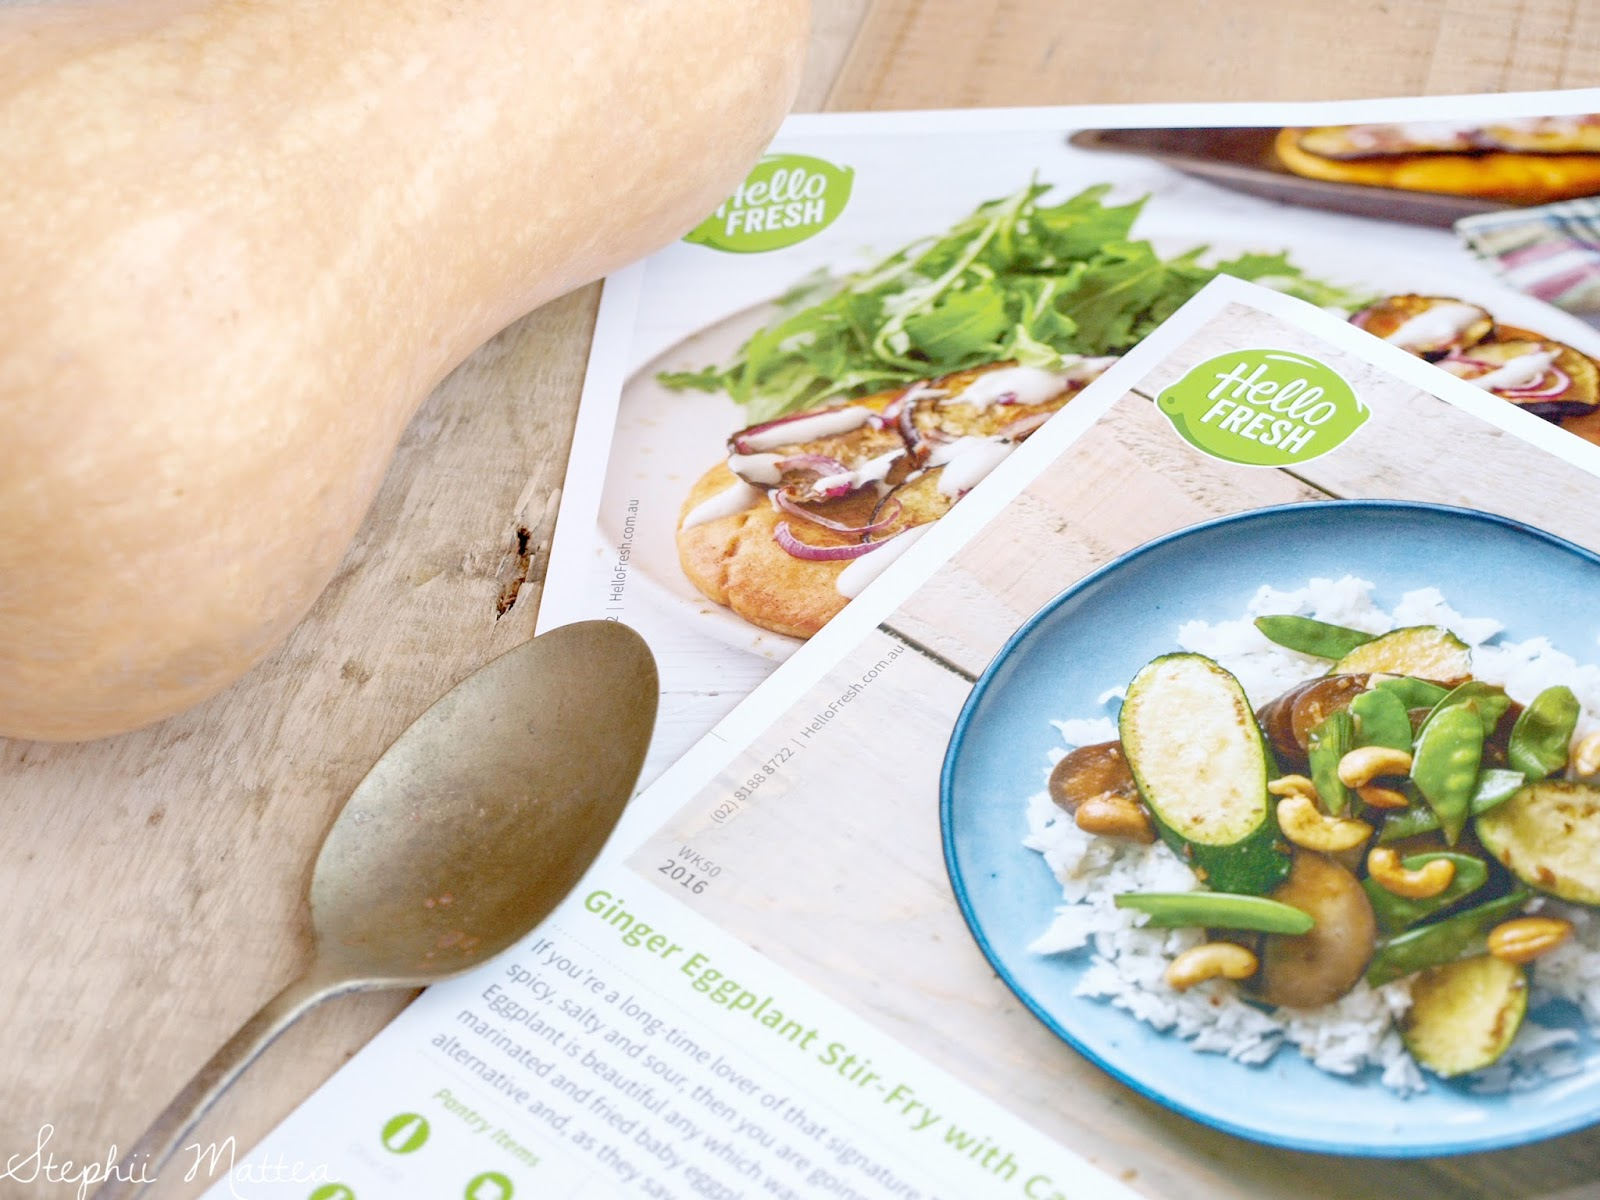 Hellofresh Meal Kit Delivery Service  Retail Stores